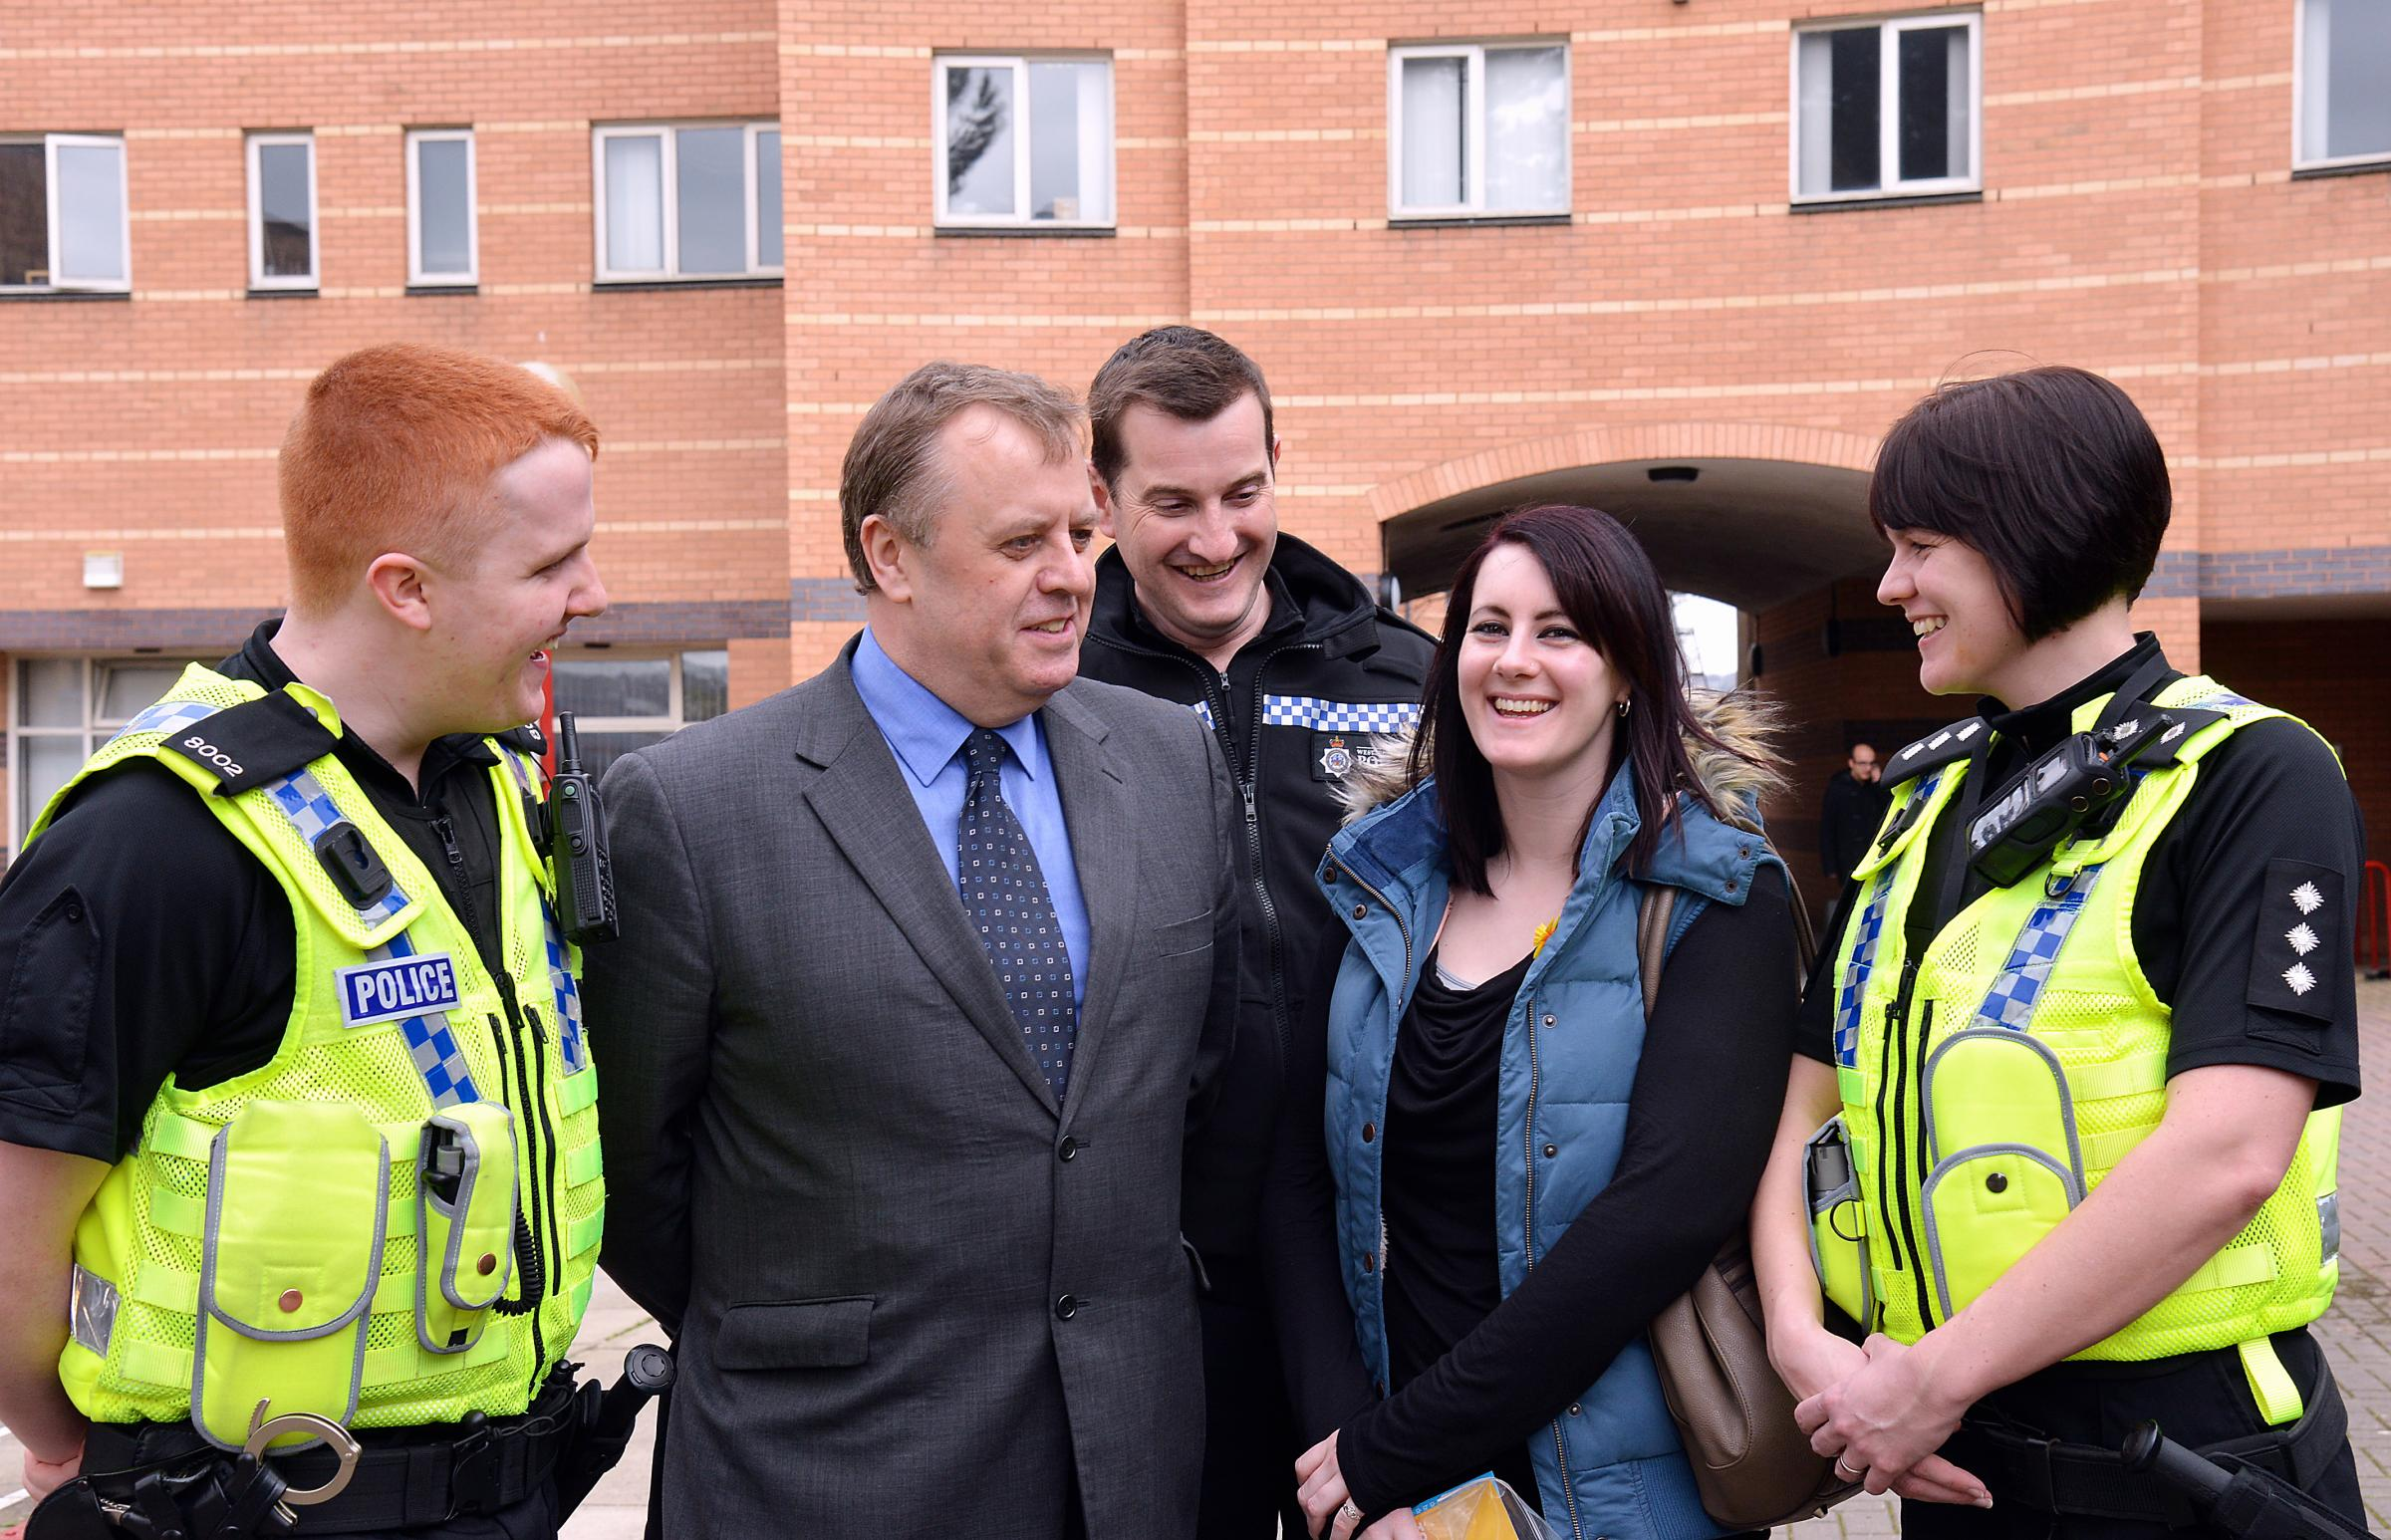 Mark Burns-Williamson (second left) and Assistant Chief Constable John Robins (centre) with Special Constable John Rhodes, Chief Inspector Sarah Baker and student Zoe Wood